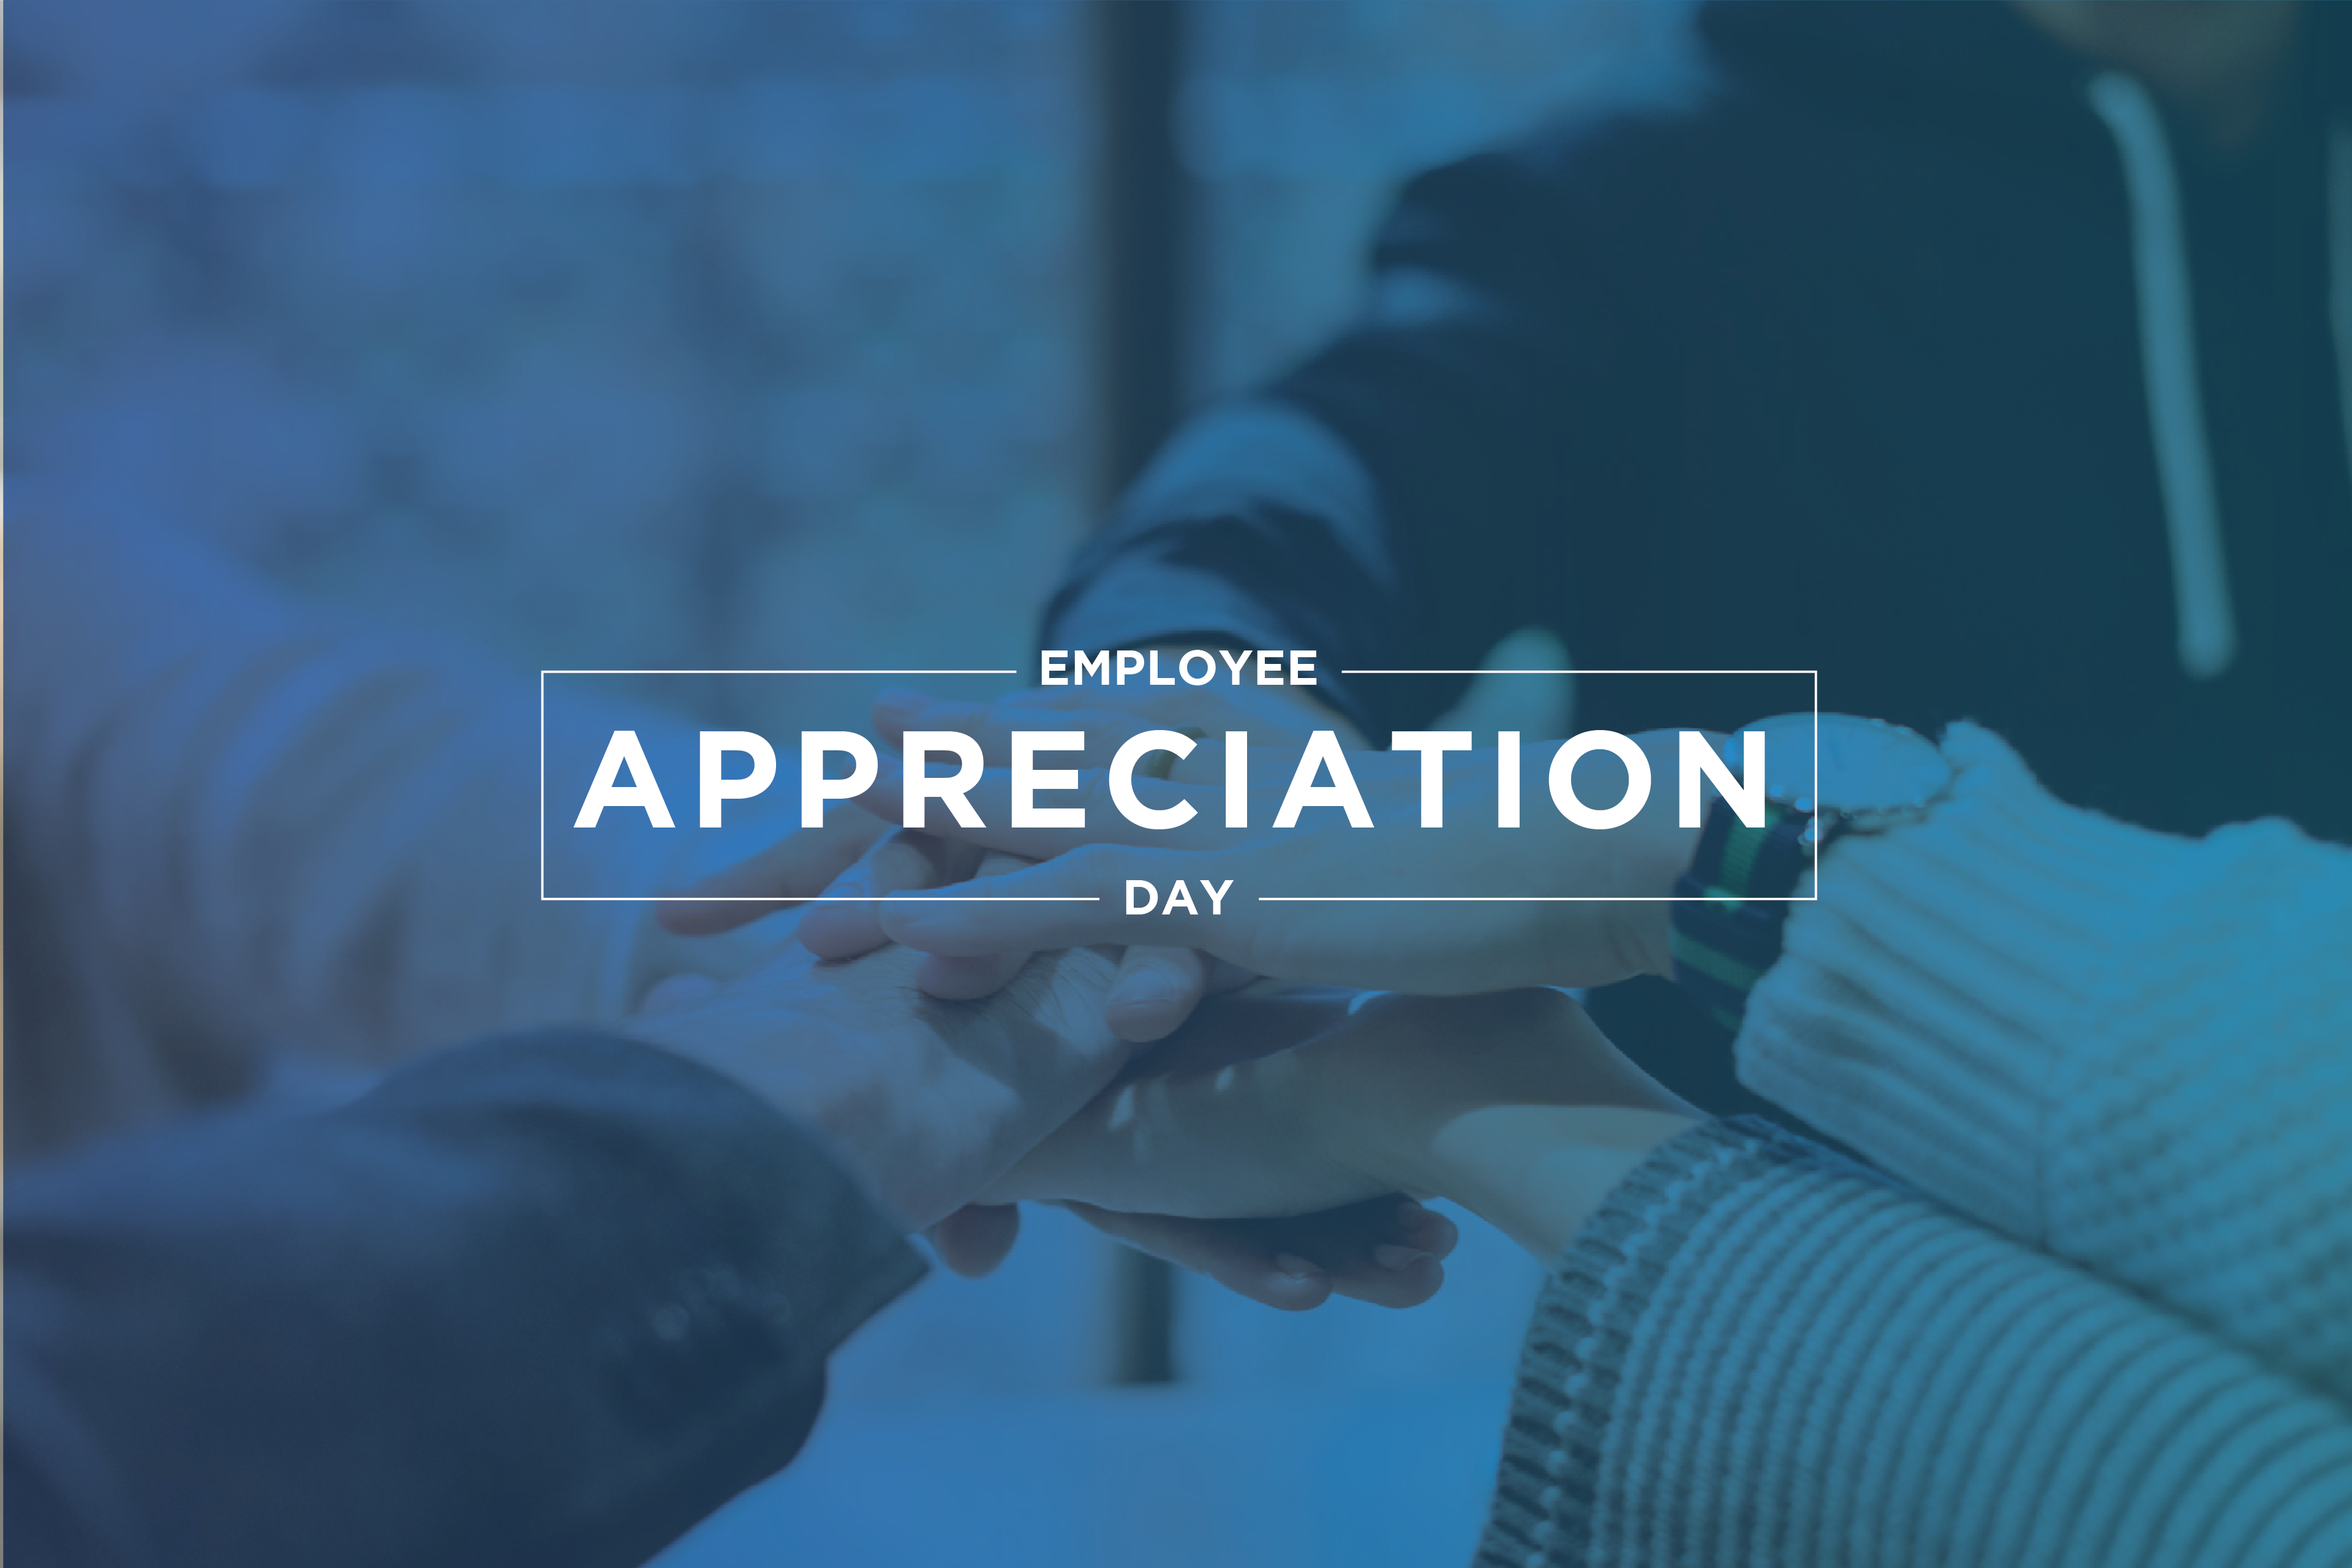 Employee Appreciation Day superimposed over a group of people joining hands